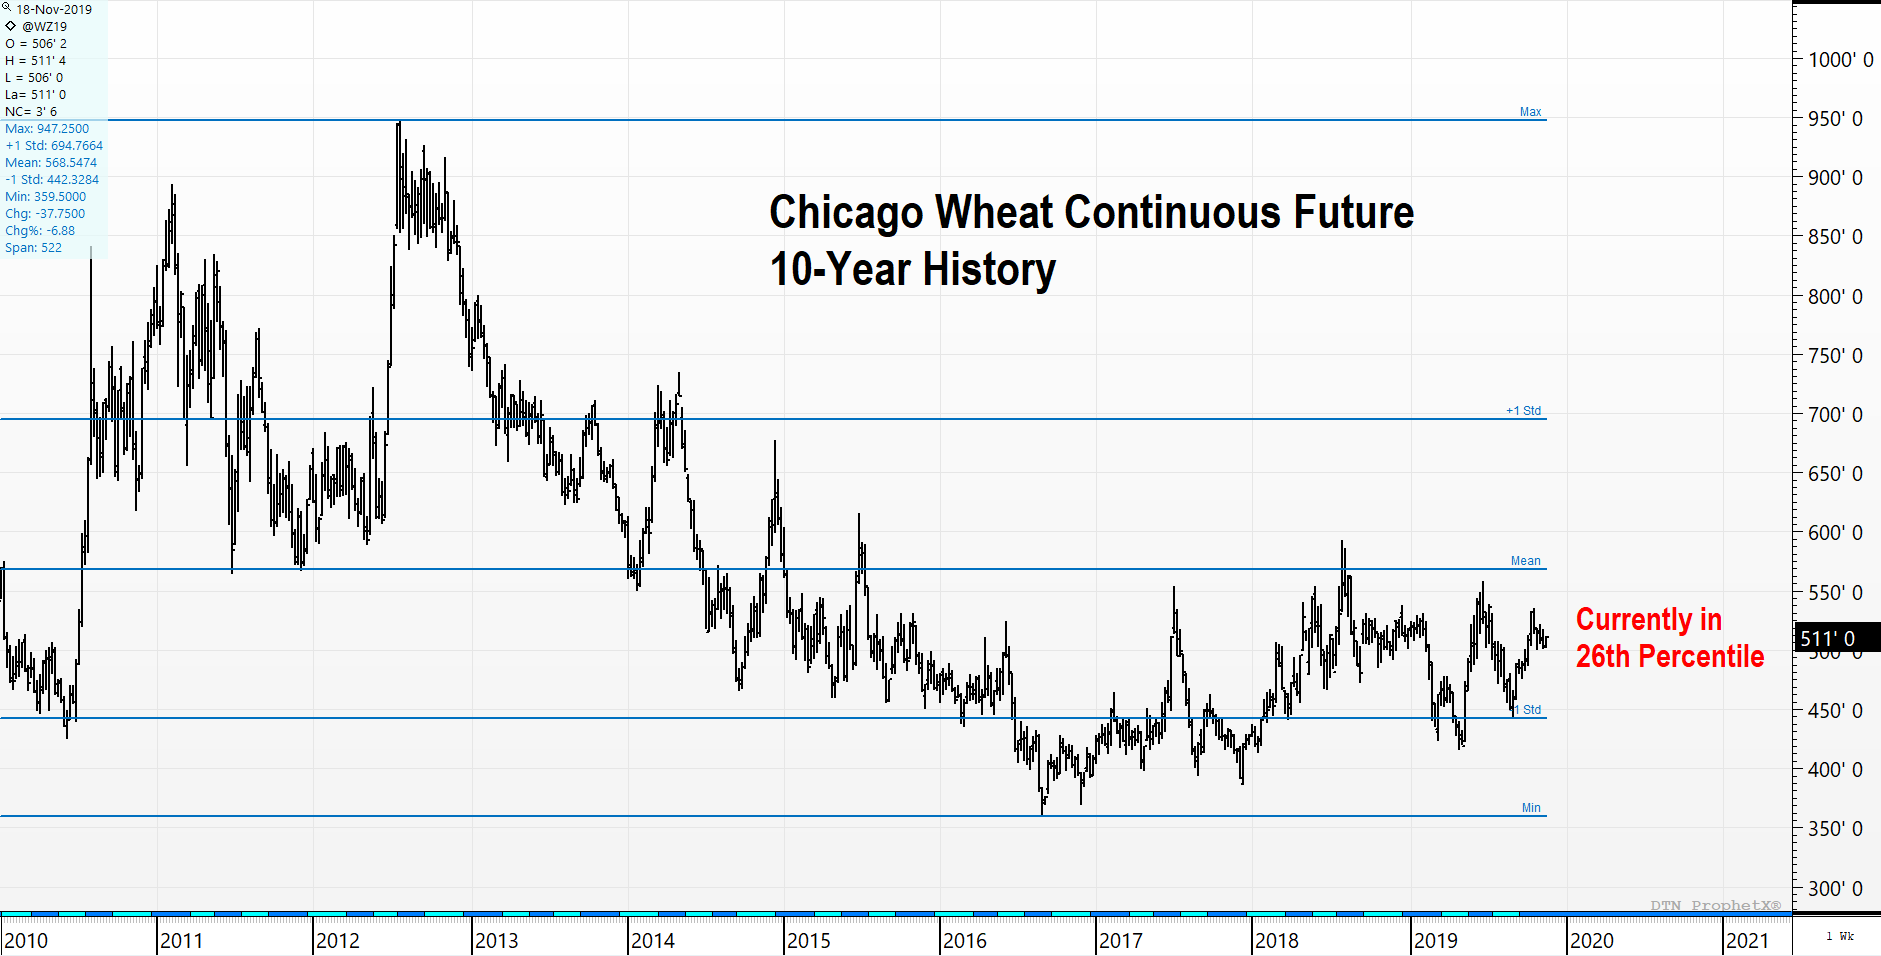 Chicago Wheat 10-Year Price History